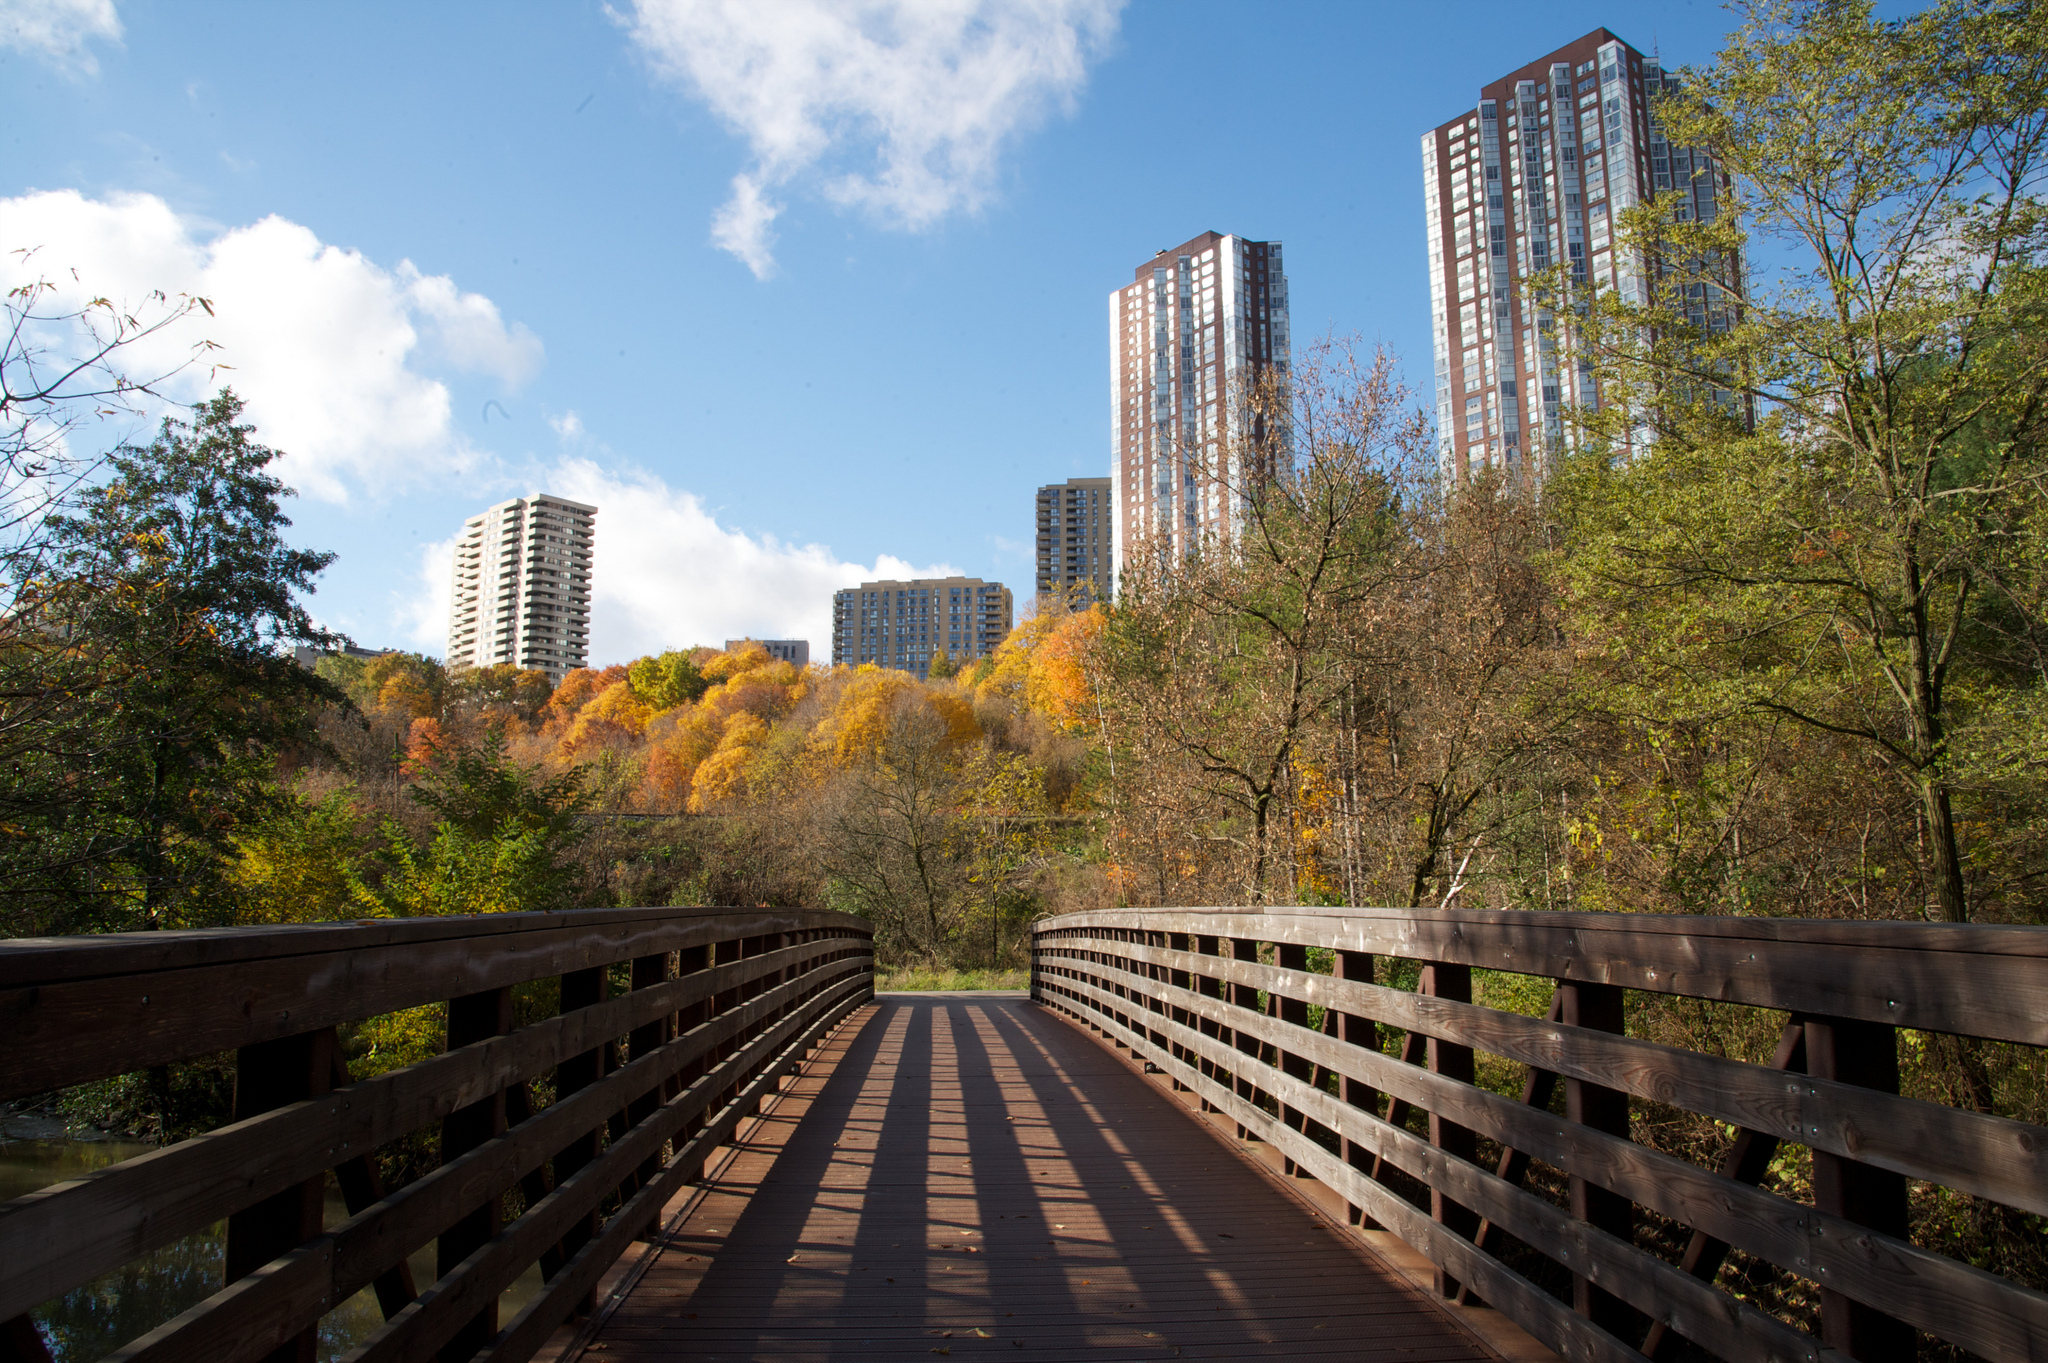 This photo shows the Don River bridge and park. It's almost evening time and maybe spring season due to the trees changing colour.